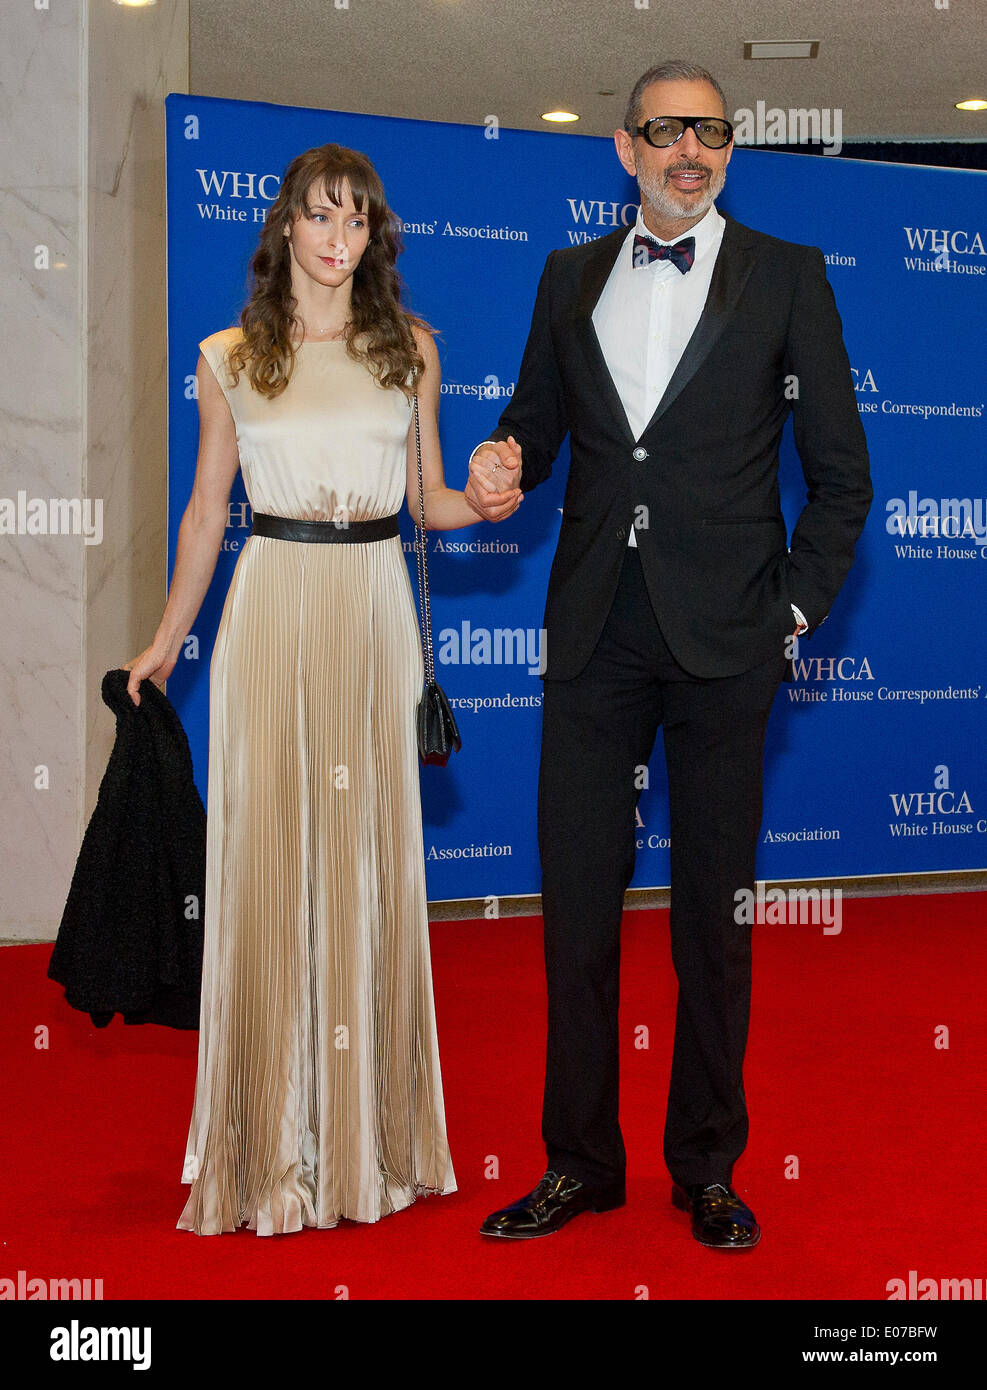 Washington, DC, USA. 03rd May, 2014. Emilie Livingston and Jeff Goldblum arrive for the 2014 White House Correspondents Association Annual Dinner at the Washington Hilton Hotel in Washington, DC, USA, 03 May 2014. Photo: Ron Sachs/CNP (RESTRICTION: NO New York or New Jersey Newspapers or newspapers within a 75 mile radius of New York City) - NO WIRE SERVICE/dpa/Alamy Live News - Stock Image